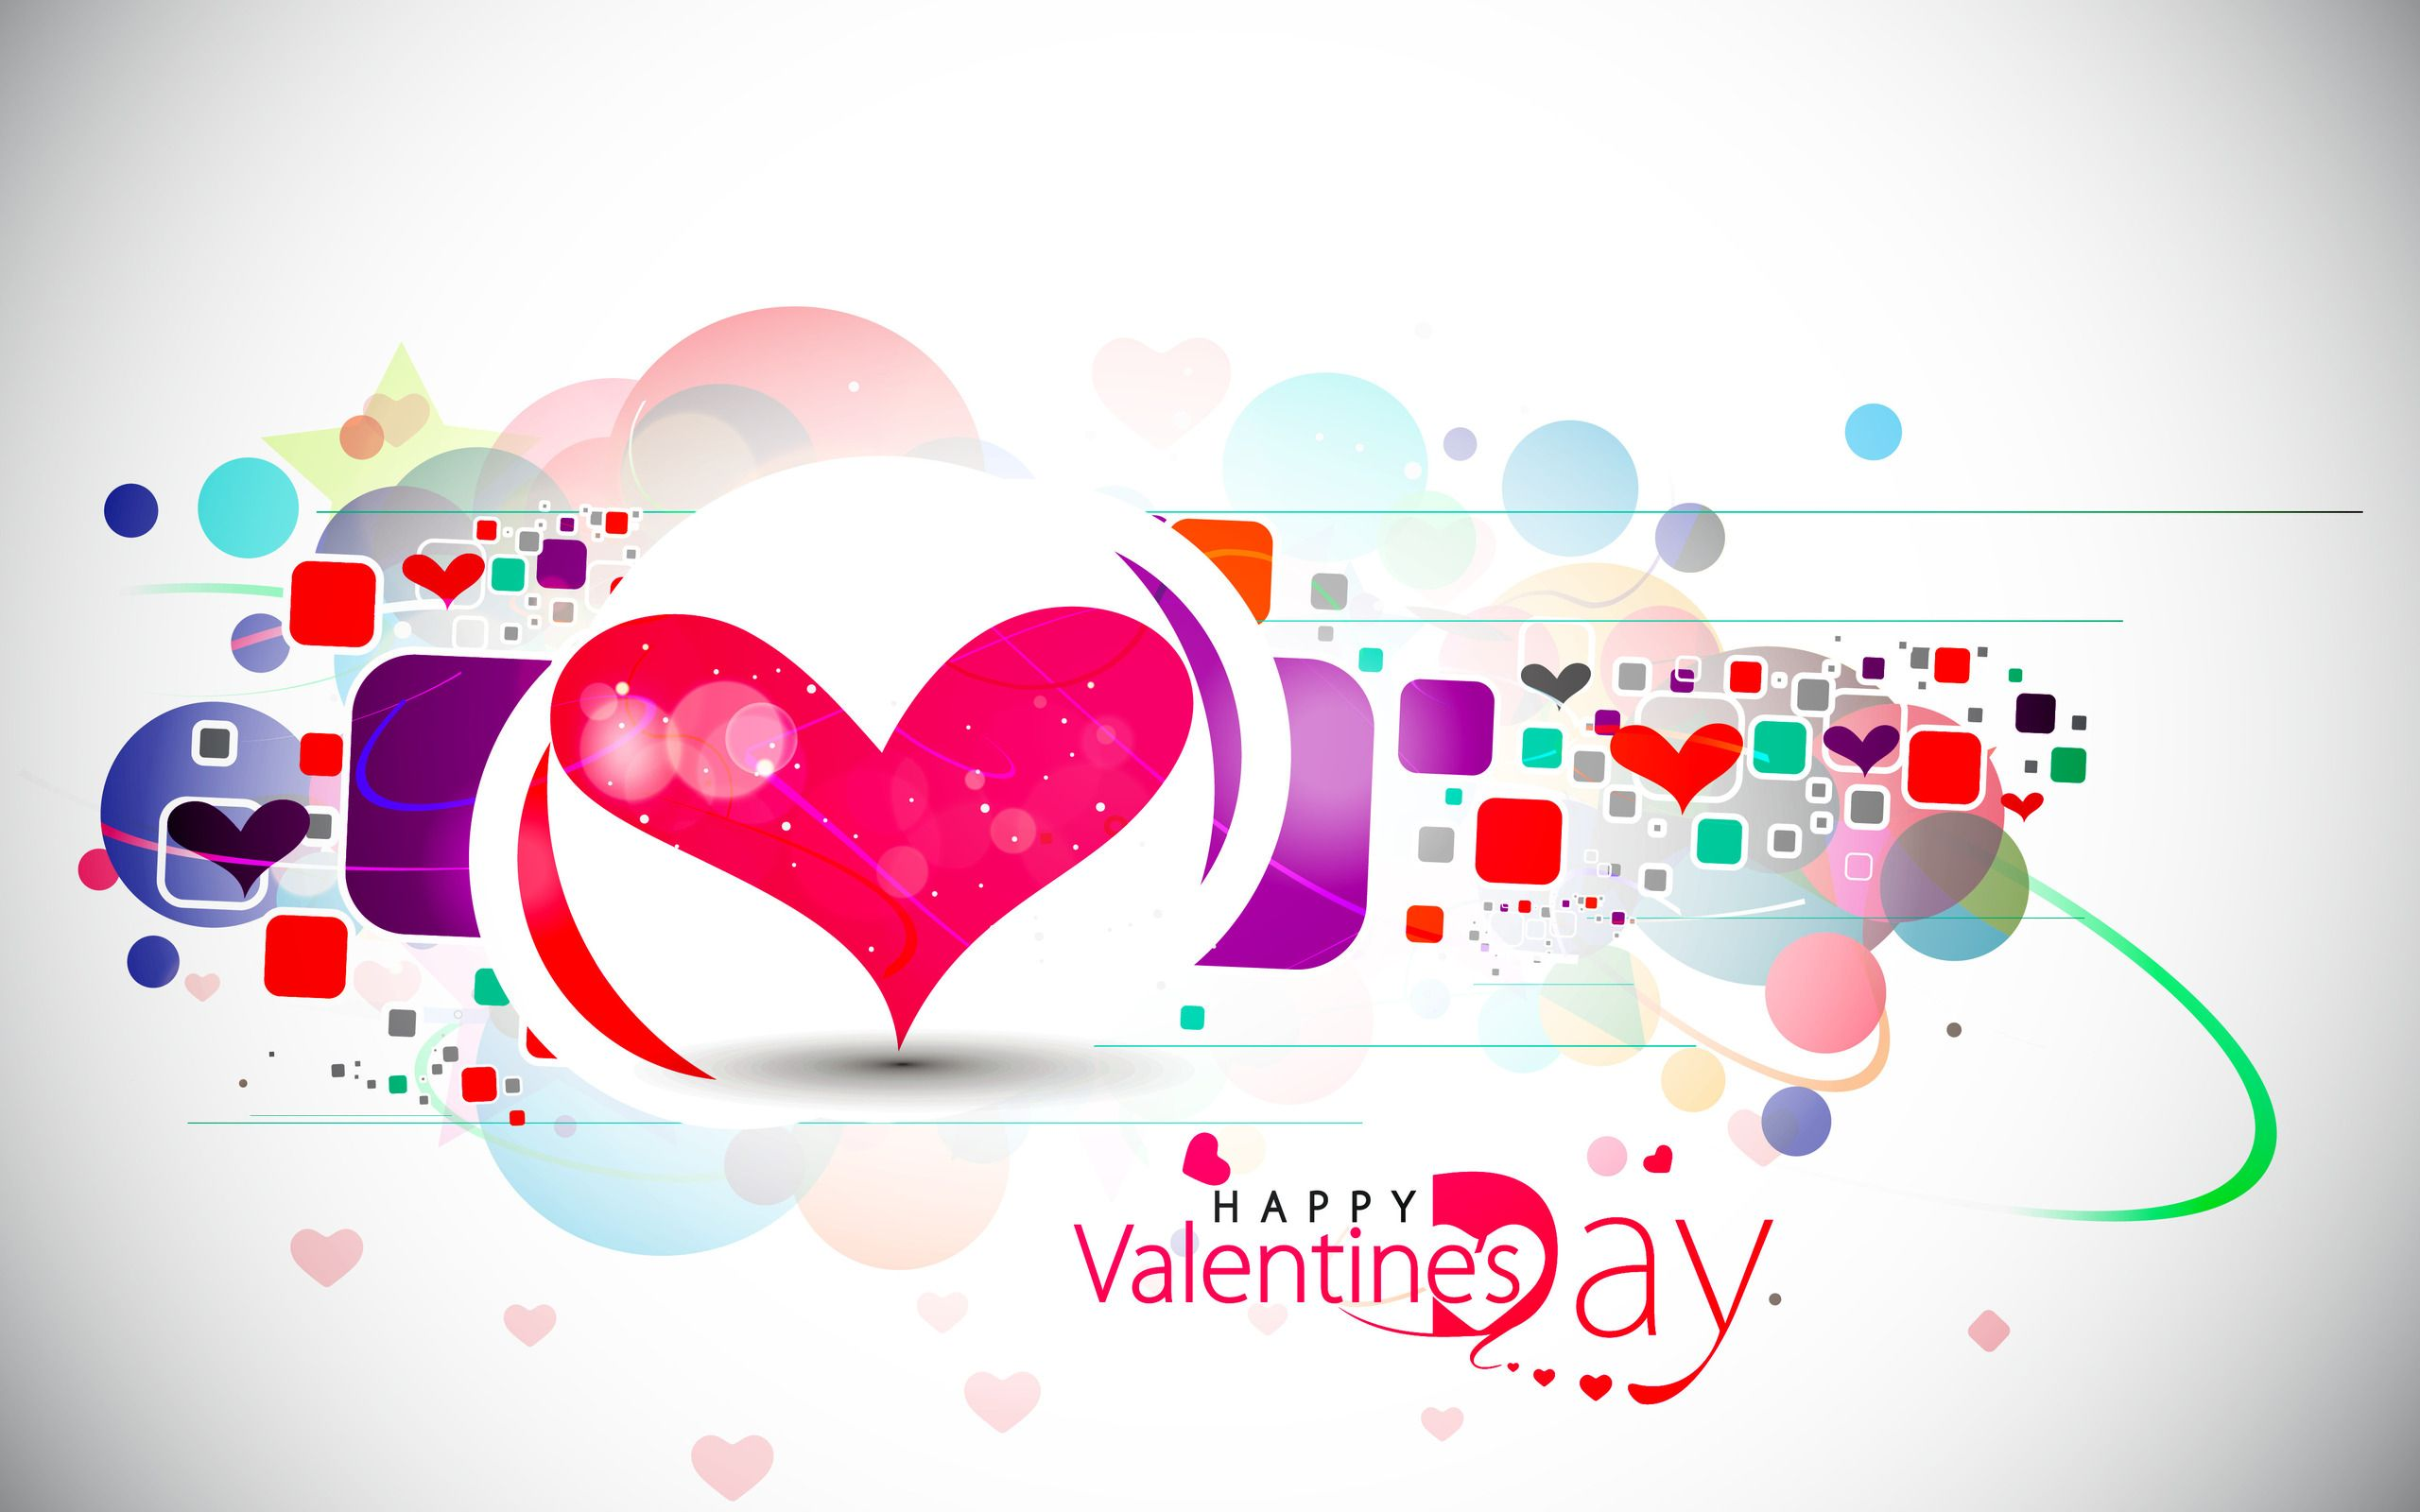 valentines day*}) my heart said you and me made for each other